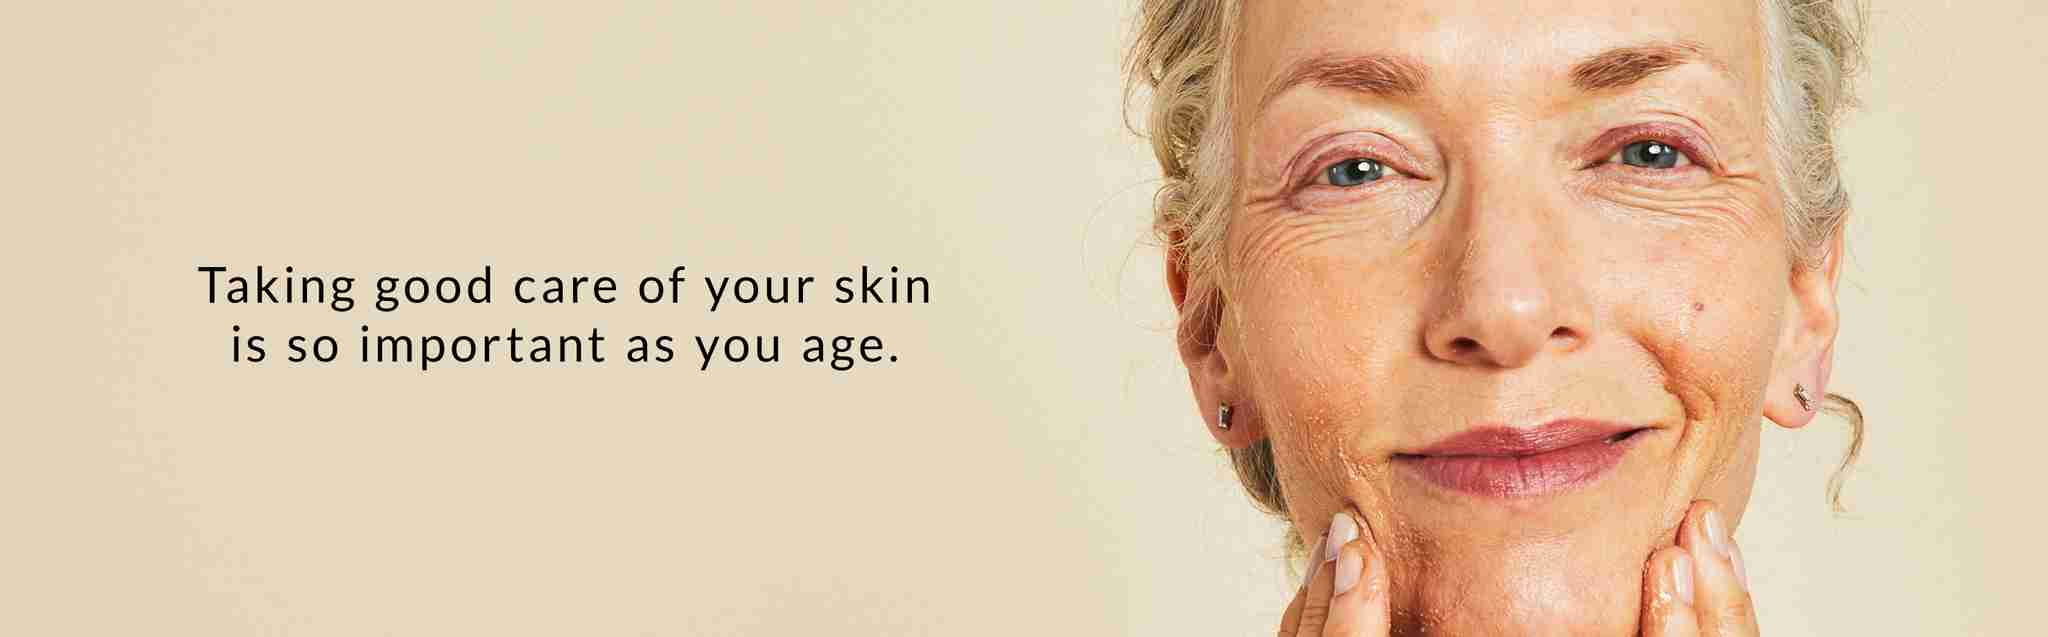 Taking good care of your skin is so important as you age.